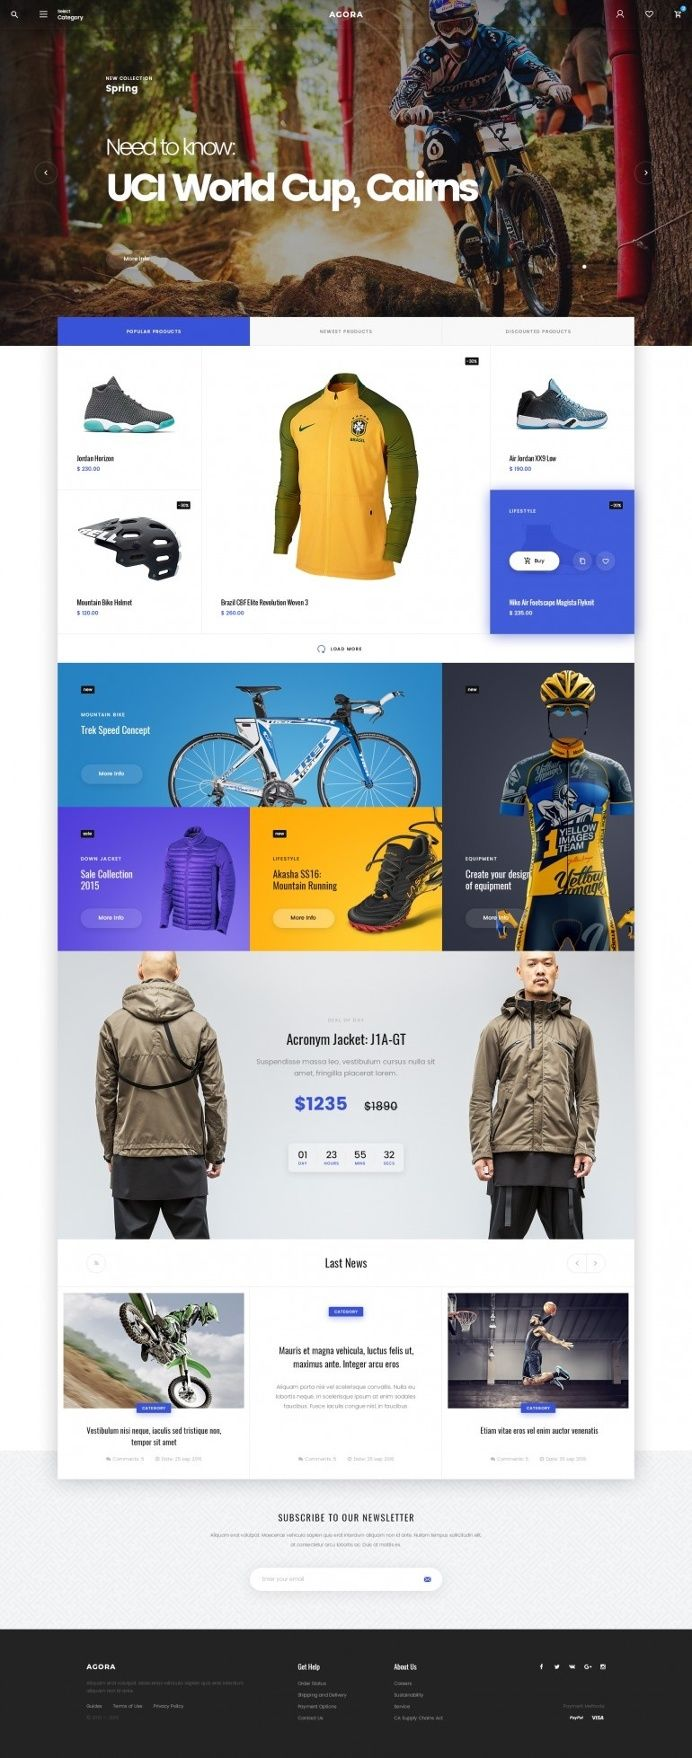 93 best UI UX images on Pinterest | Website layout, Web layout and ...